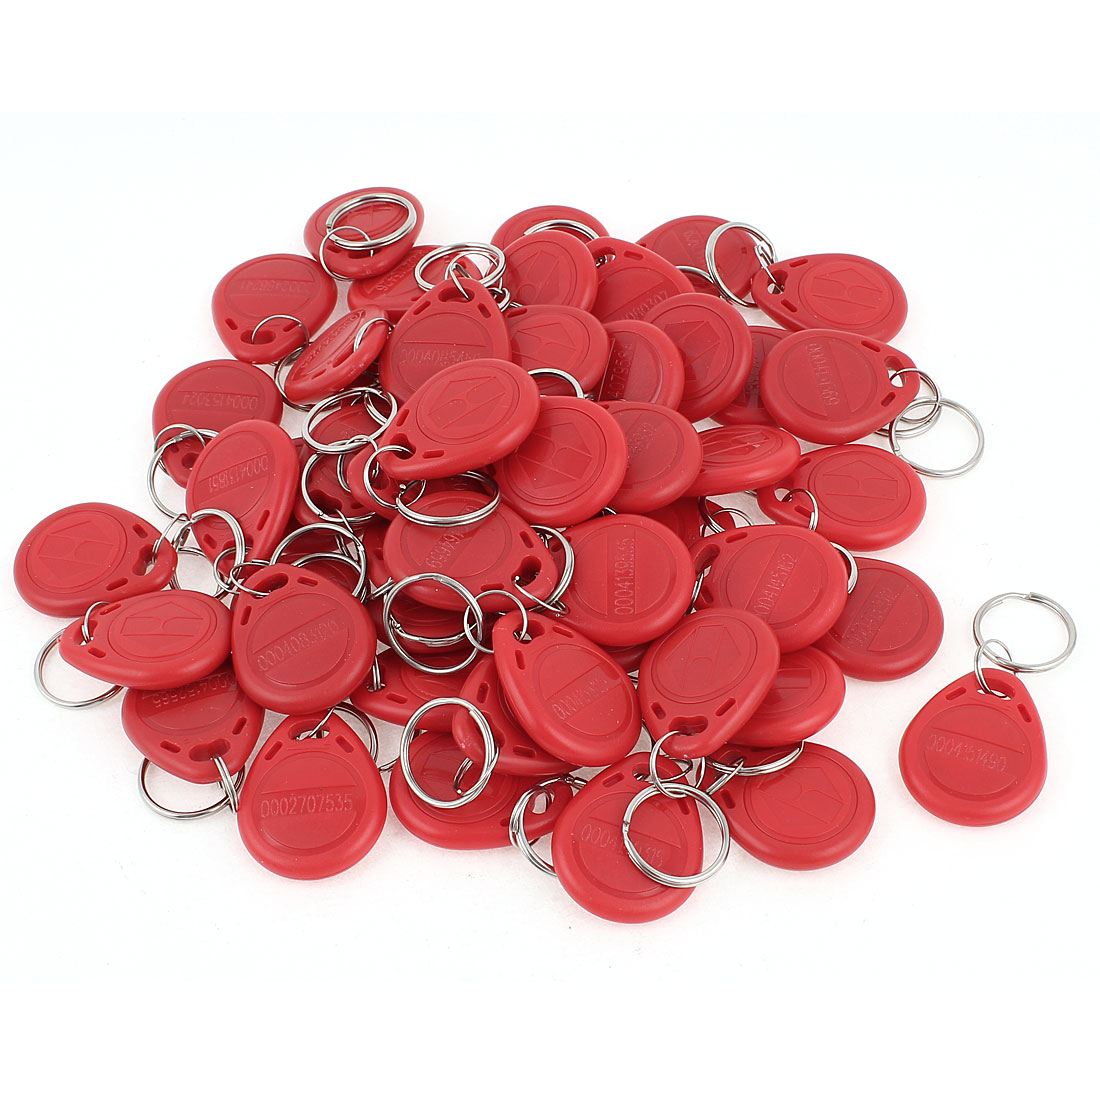 50pcs Red RFID EM4100 125KHz Access Control ID Cards Tag Keyring Key Fobs